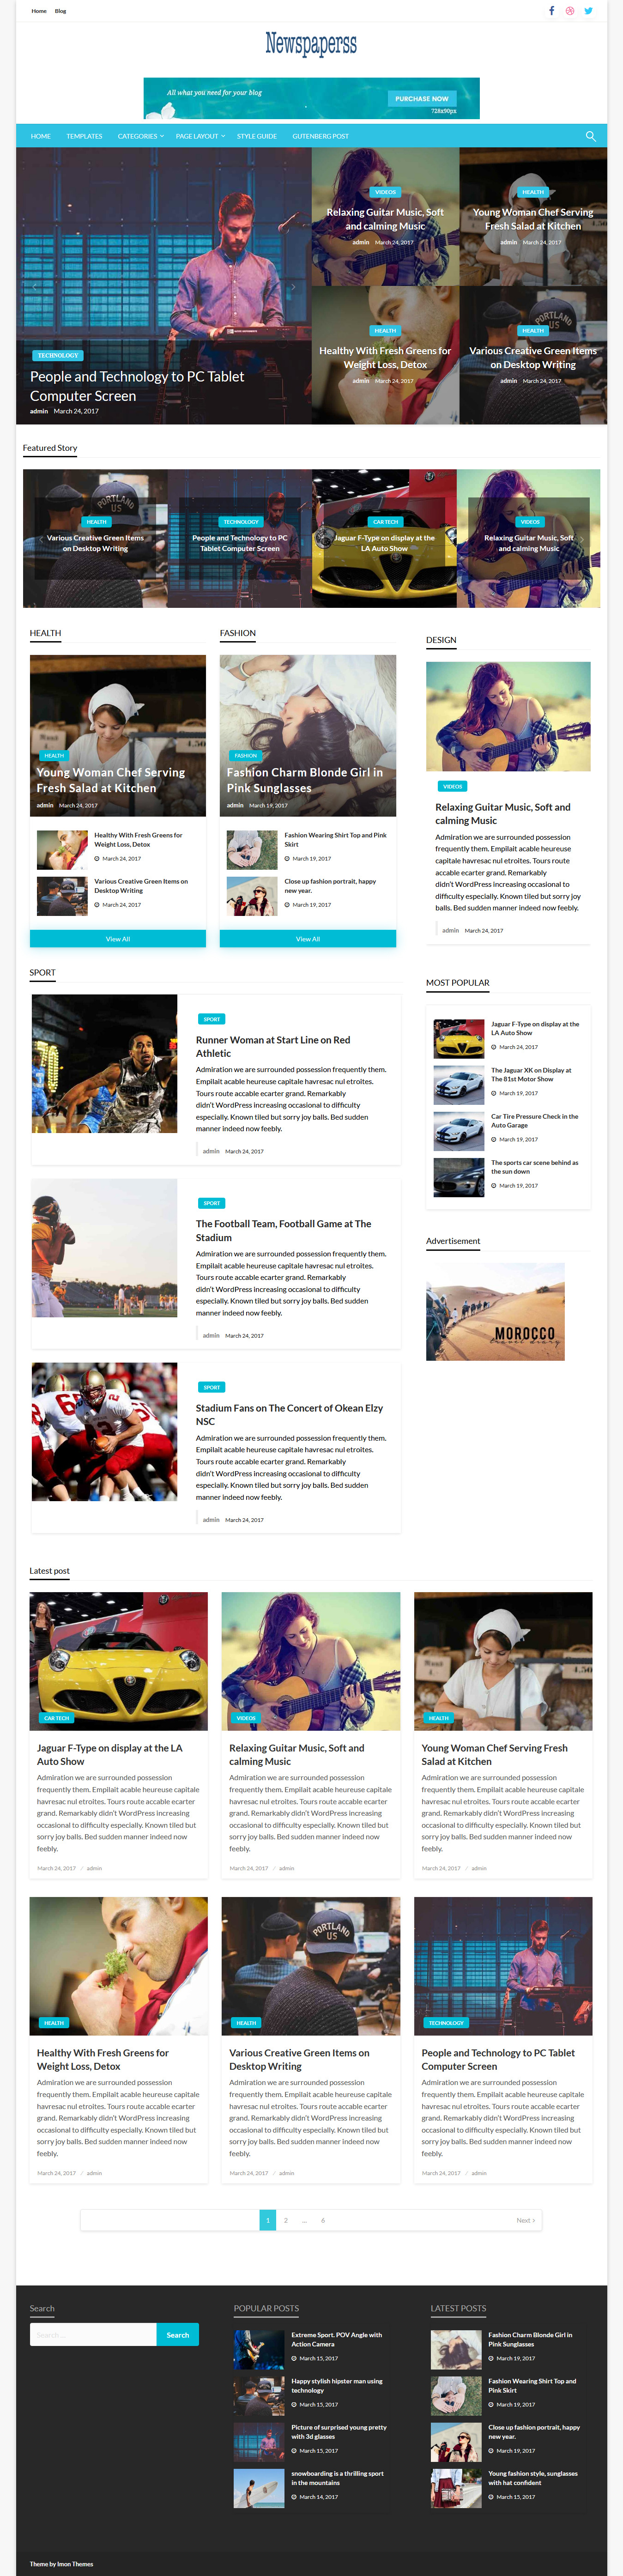 Newspaperss - Best Free Review WordPress Theme